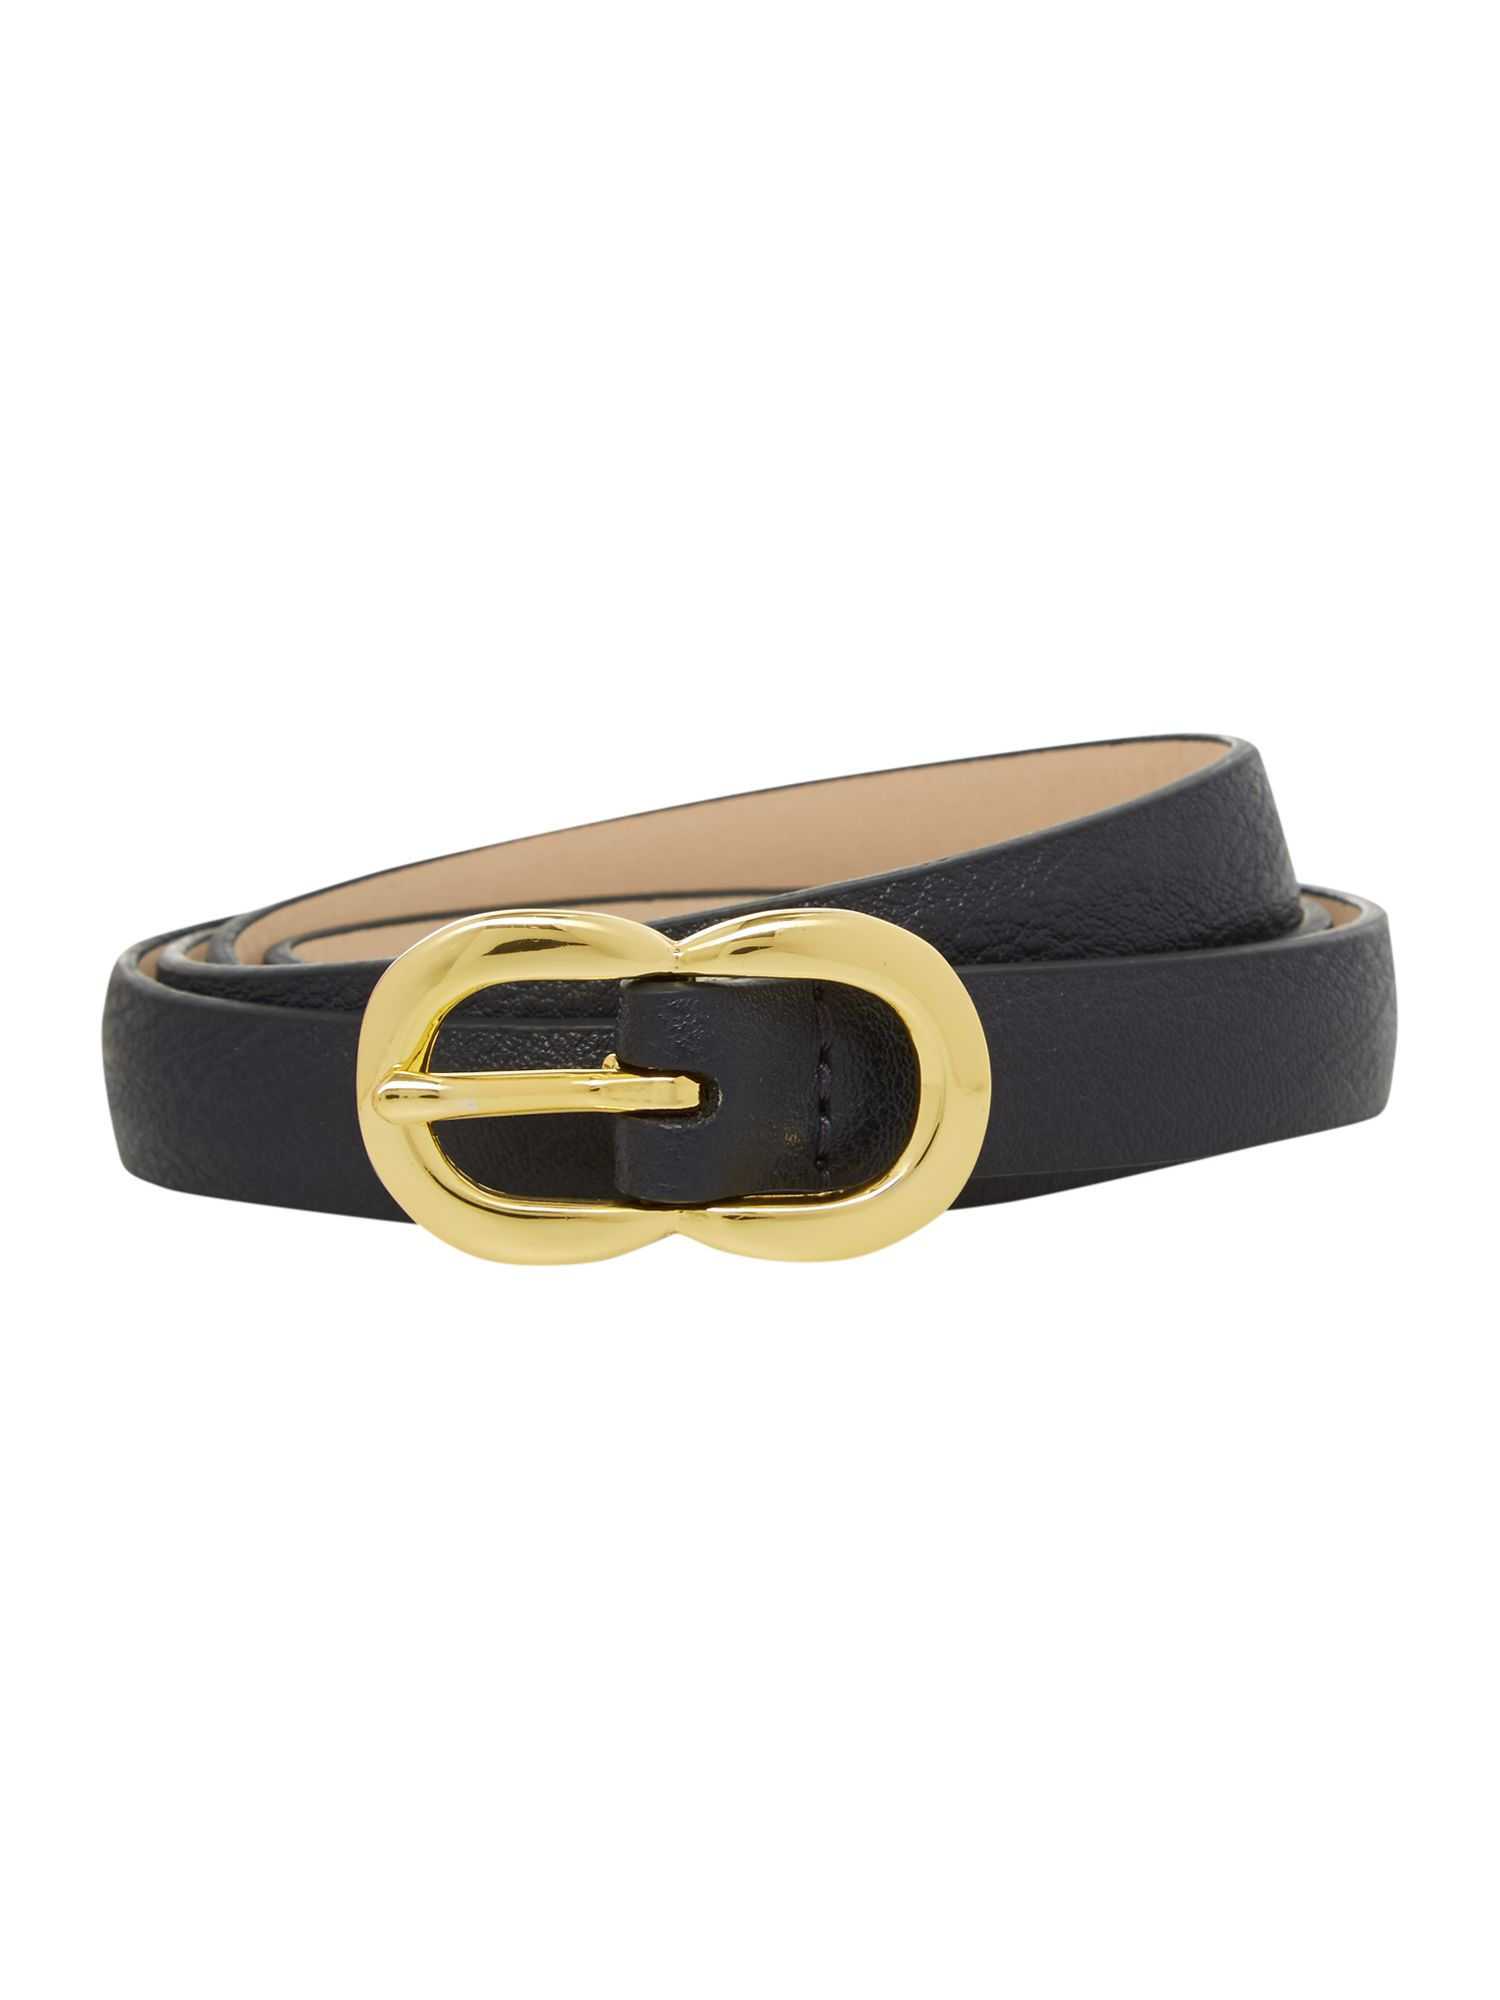 Navy double buckle leather belt